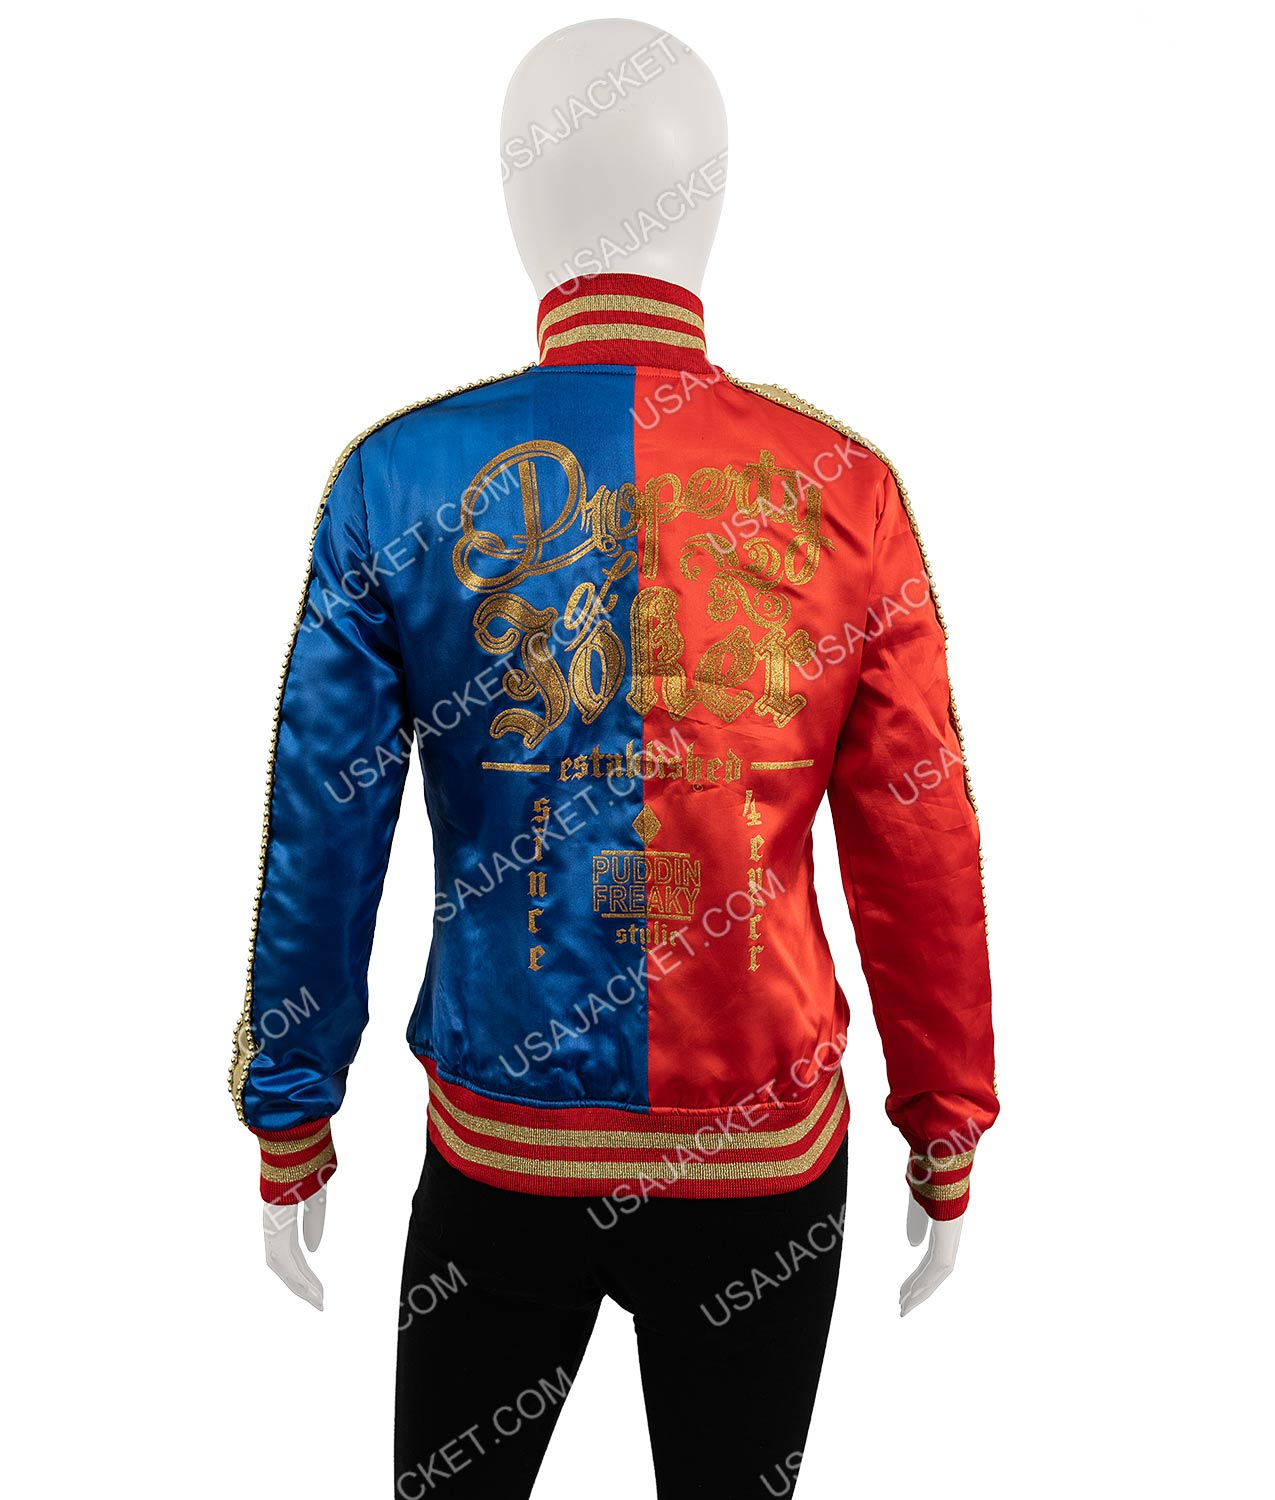 Harley Quinn Suicide Squad Jacket Of Margot Robbie. $69 Only